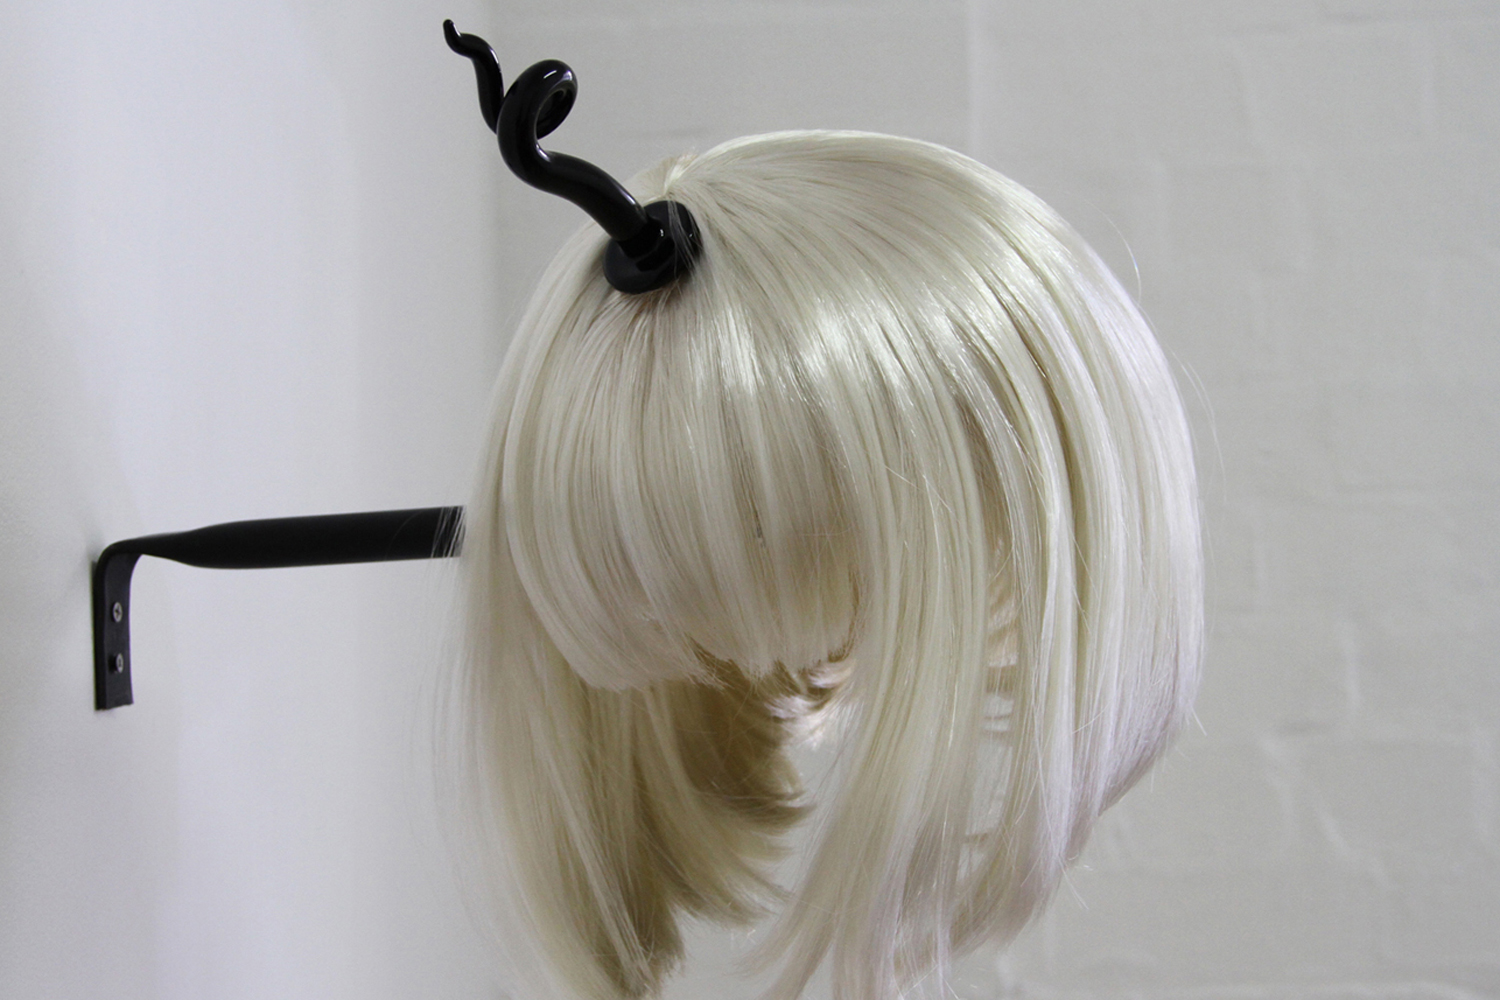 Anastasia Booth Unicorn, 2014, synthetic hair, glass and steel. 20 x 25 x3 0cm.